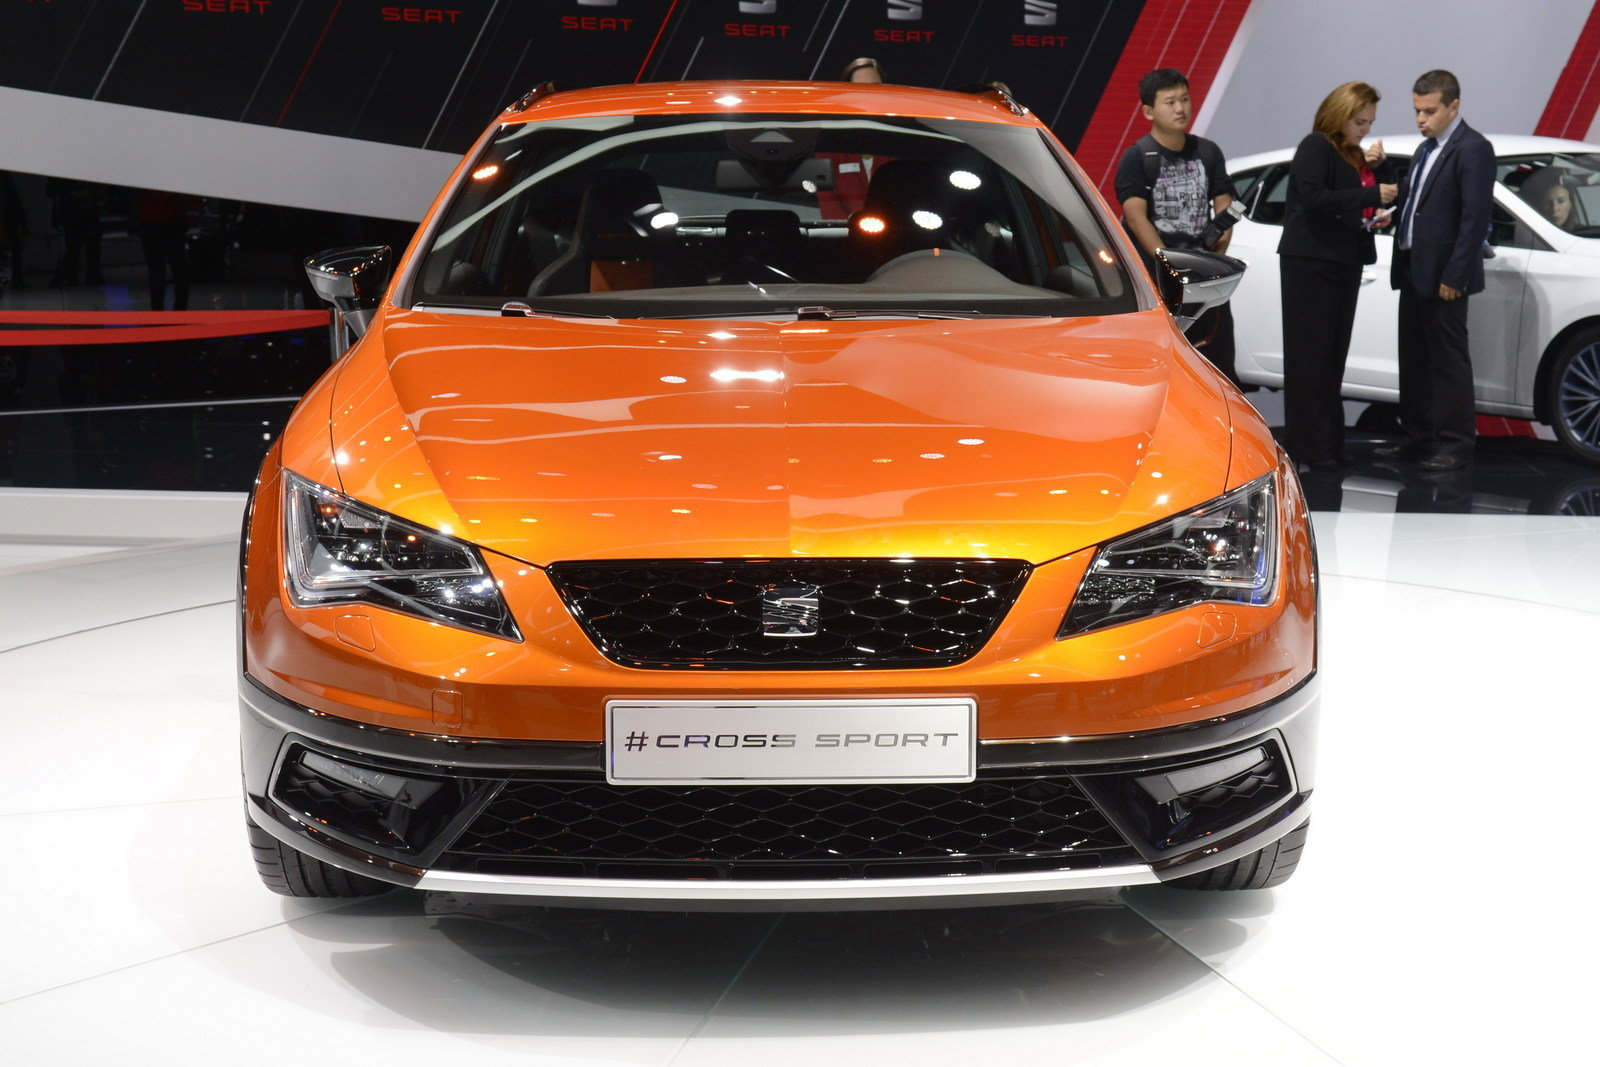 2016 seat leon cross sport picture 646826 car review top speed. Black Bedroom Furniture Sets. Home Design Ideas